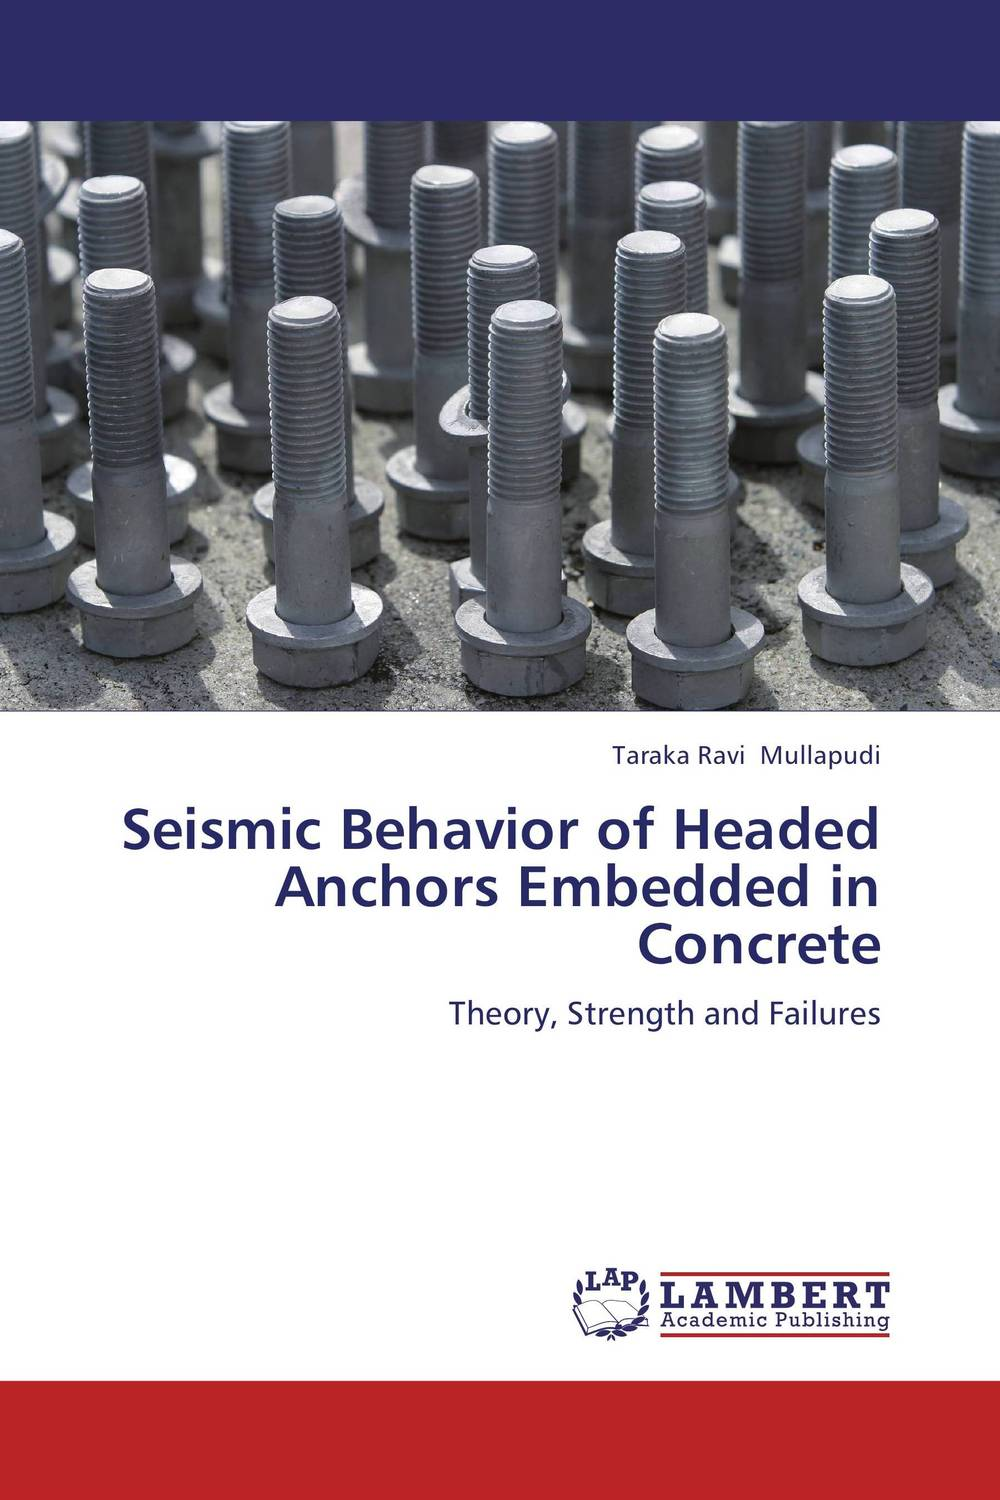 Seismic Behavior of Headed Anchors Embedded in Concrete working with concrete